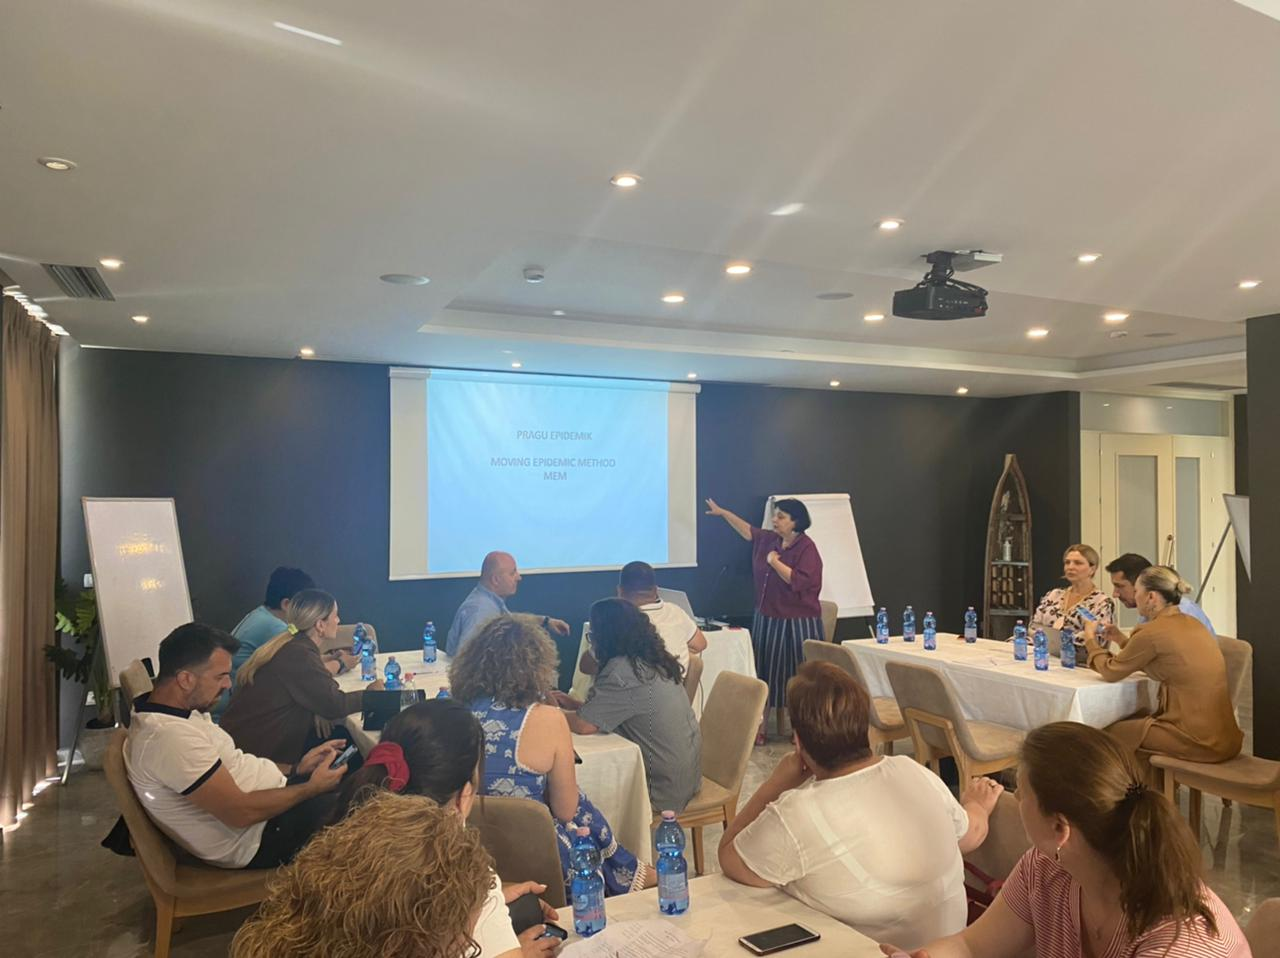 Day 2 of the workshop- 25 June 2021